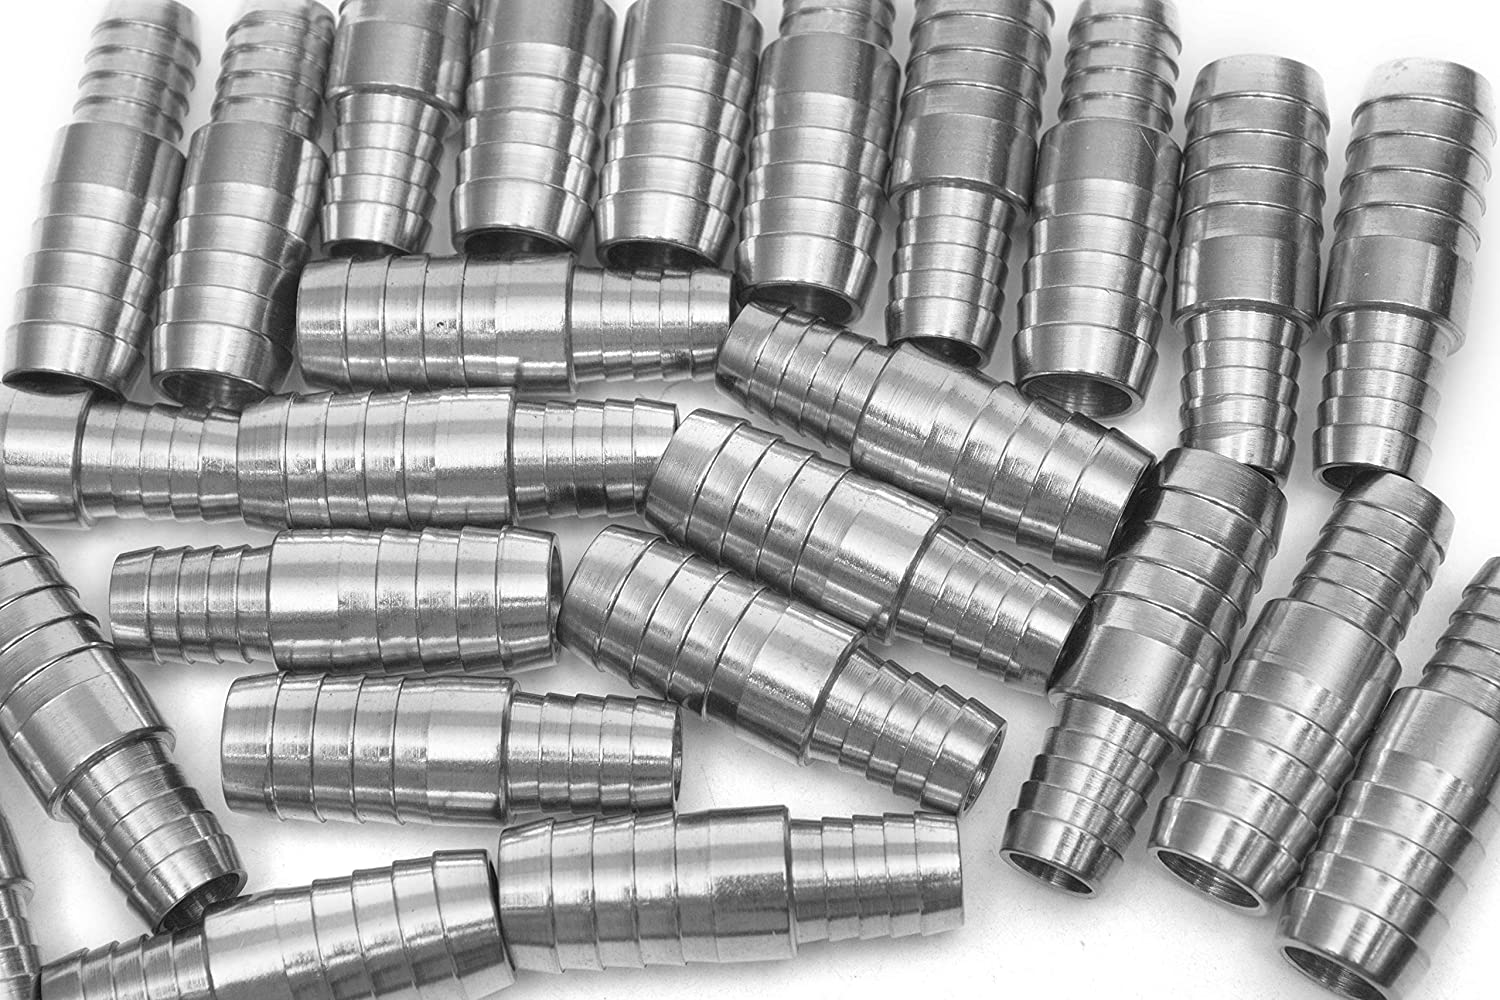 Generic Bar Production Stainless Steel 316 Barb Splicer Mender 1/2 Hose ID x 3/8 Hose ID Fitting Air Water Fuel Boat (Pack of 25) HuaxinYicheng Trade Co. Ltd.